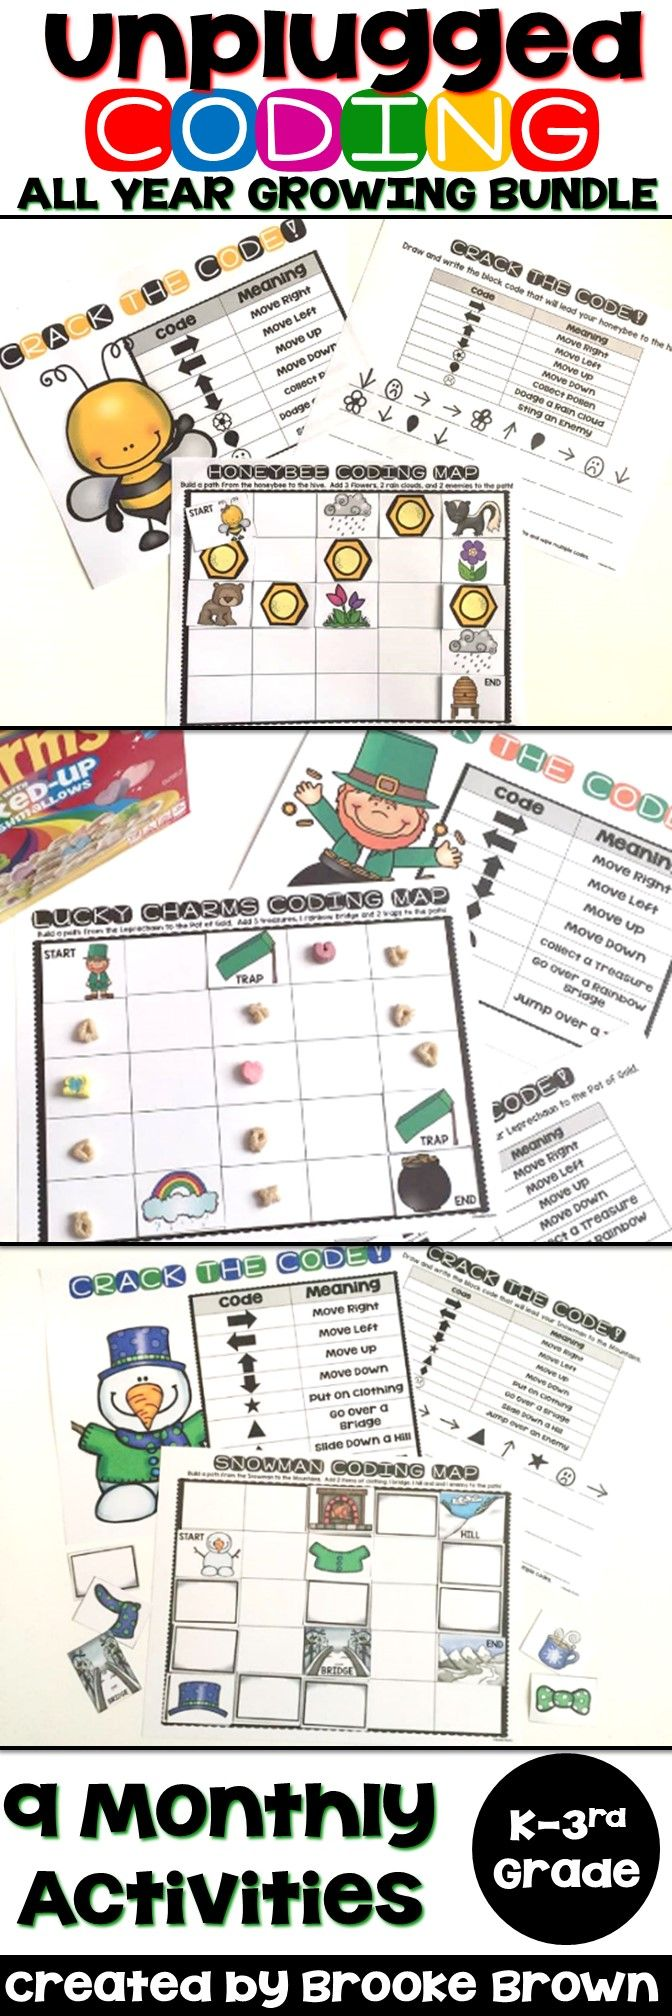 Worksheet Kindergarten Enrichment Activities 485 best enrichment activities images on pinterest science unplugged coding for the entire year kindergarten first grade and second grade